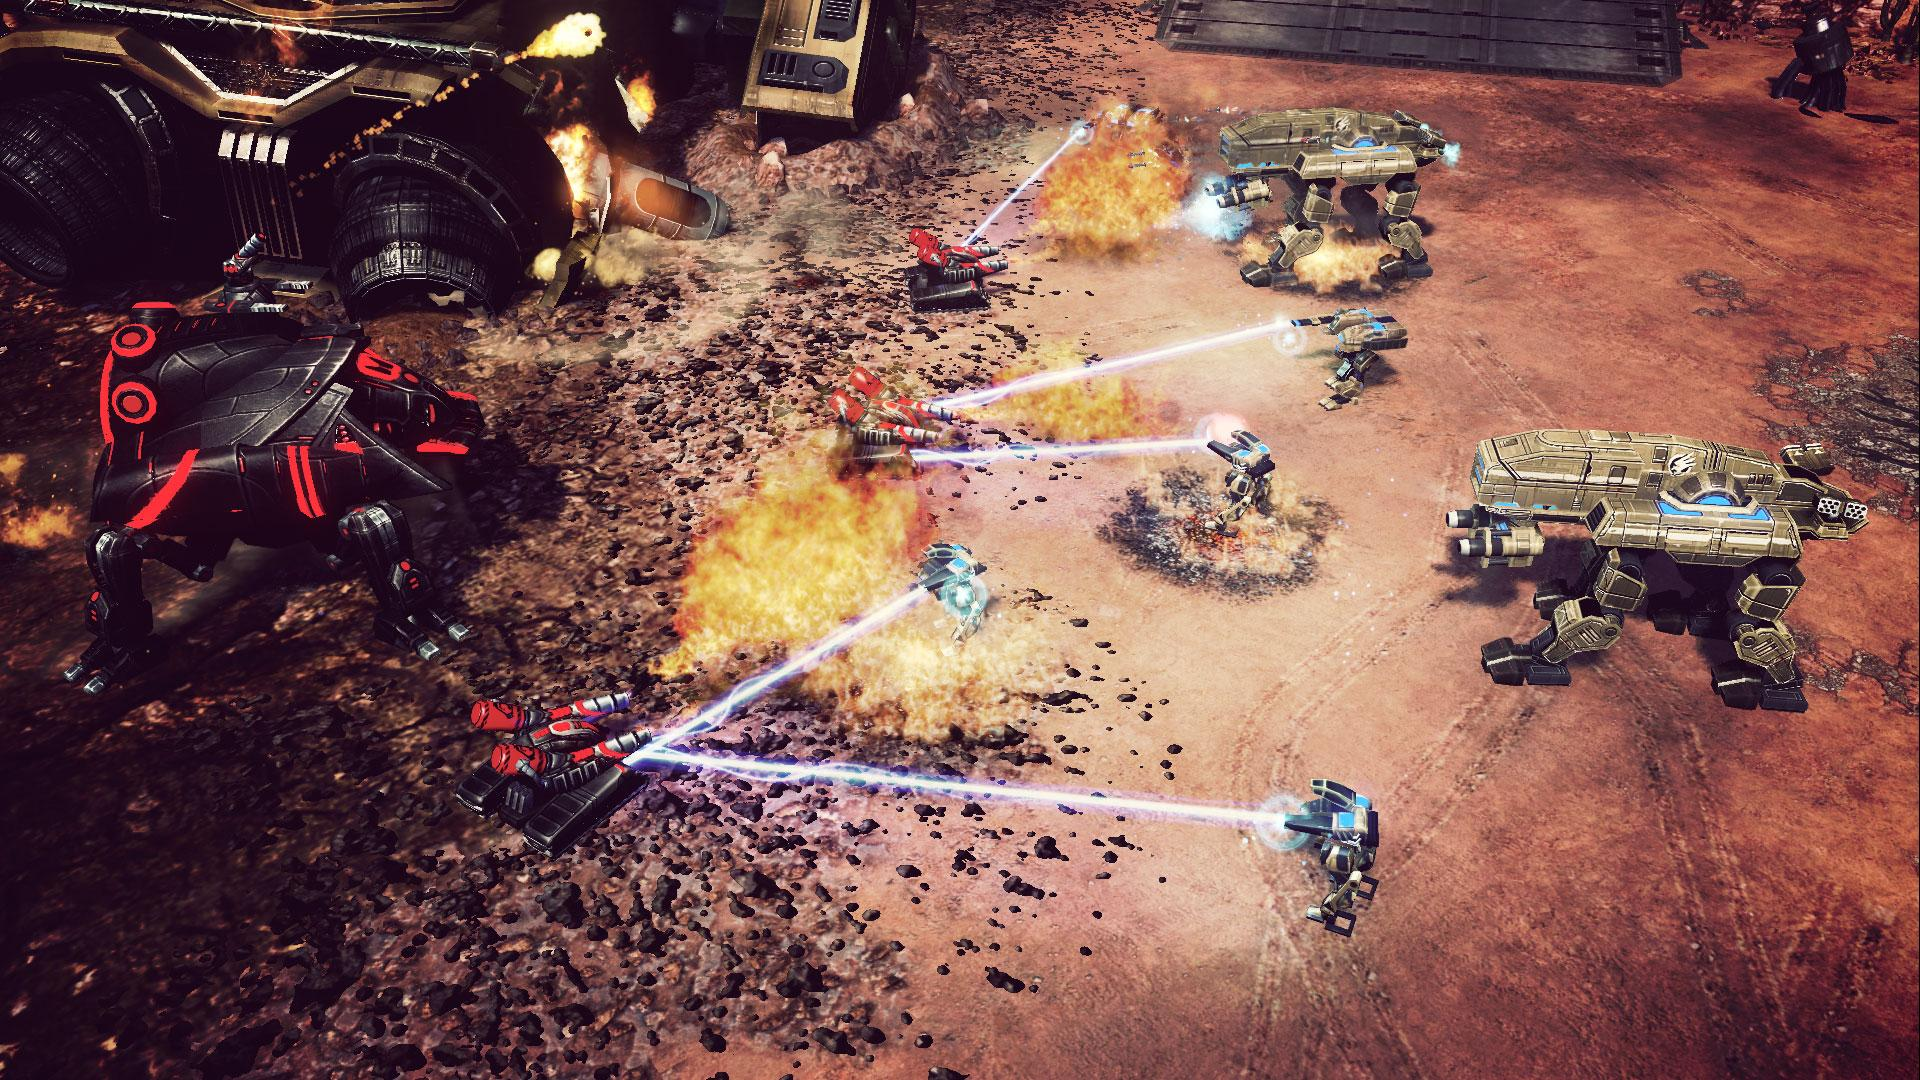 command and conquer 4 tiberian twilight save game download